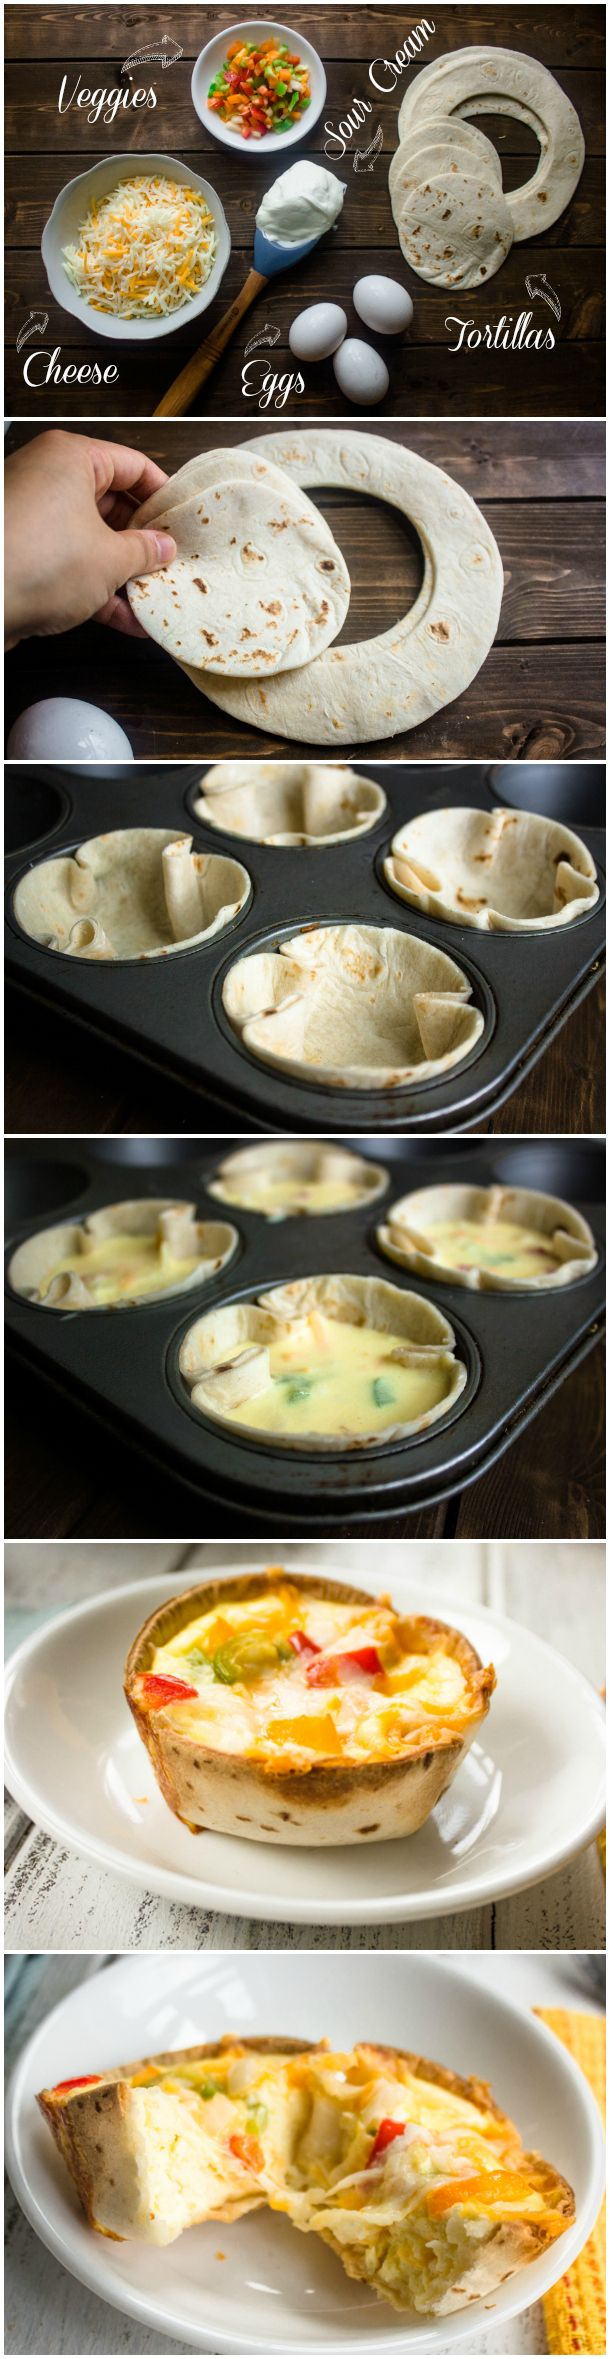 Easy Mini Egg and Cheese Tortilla Cups